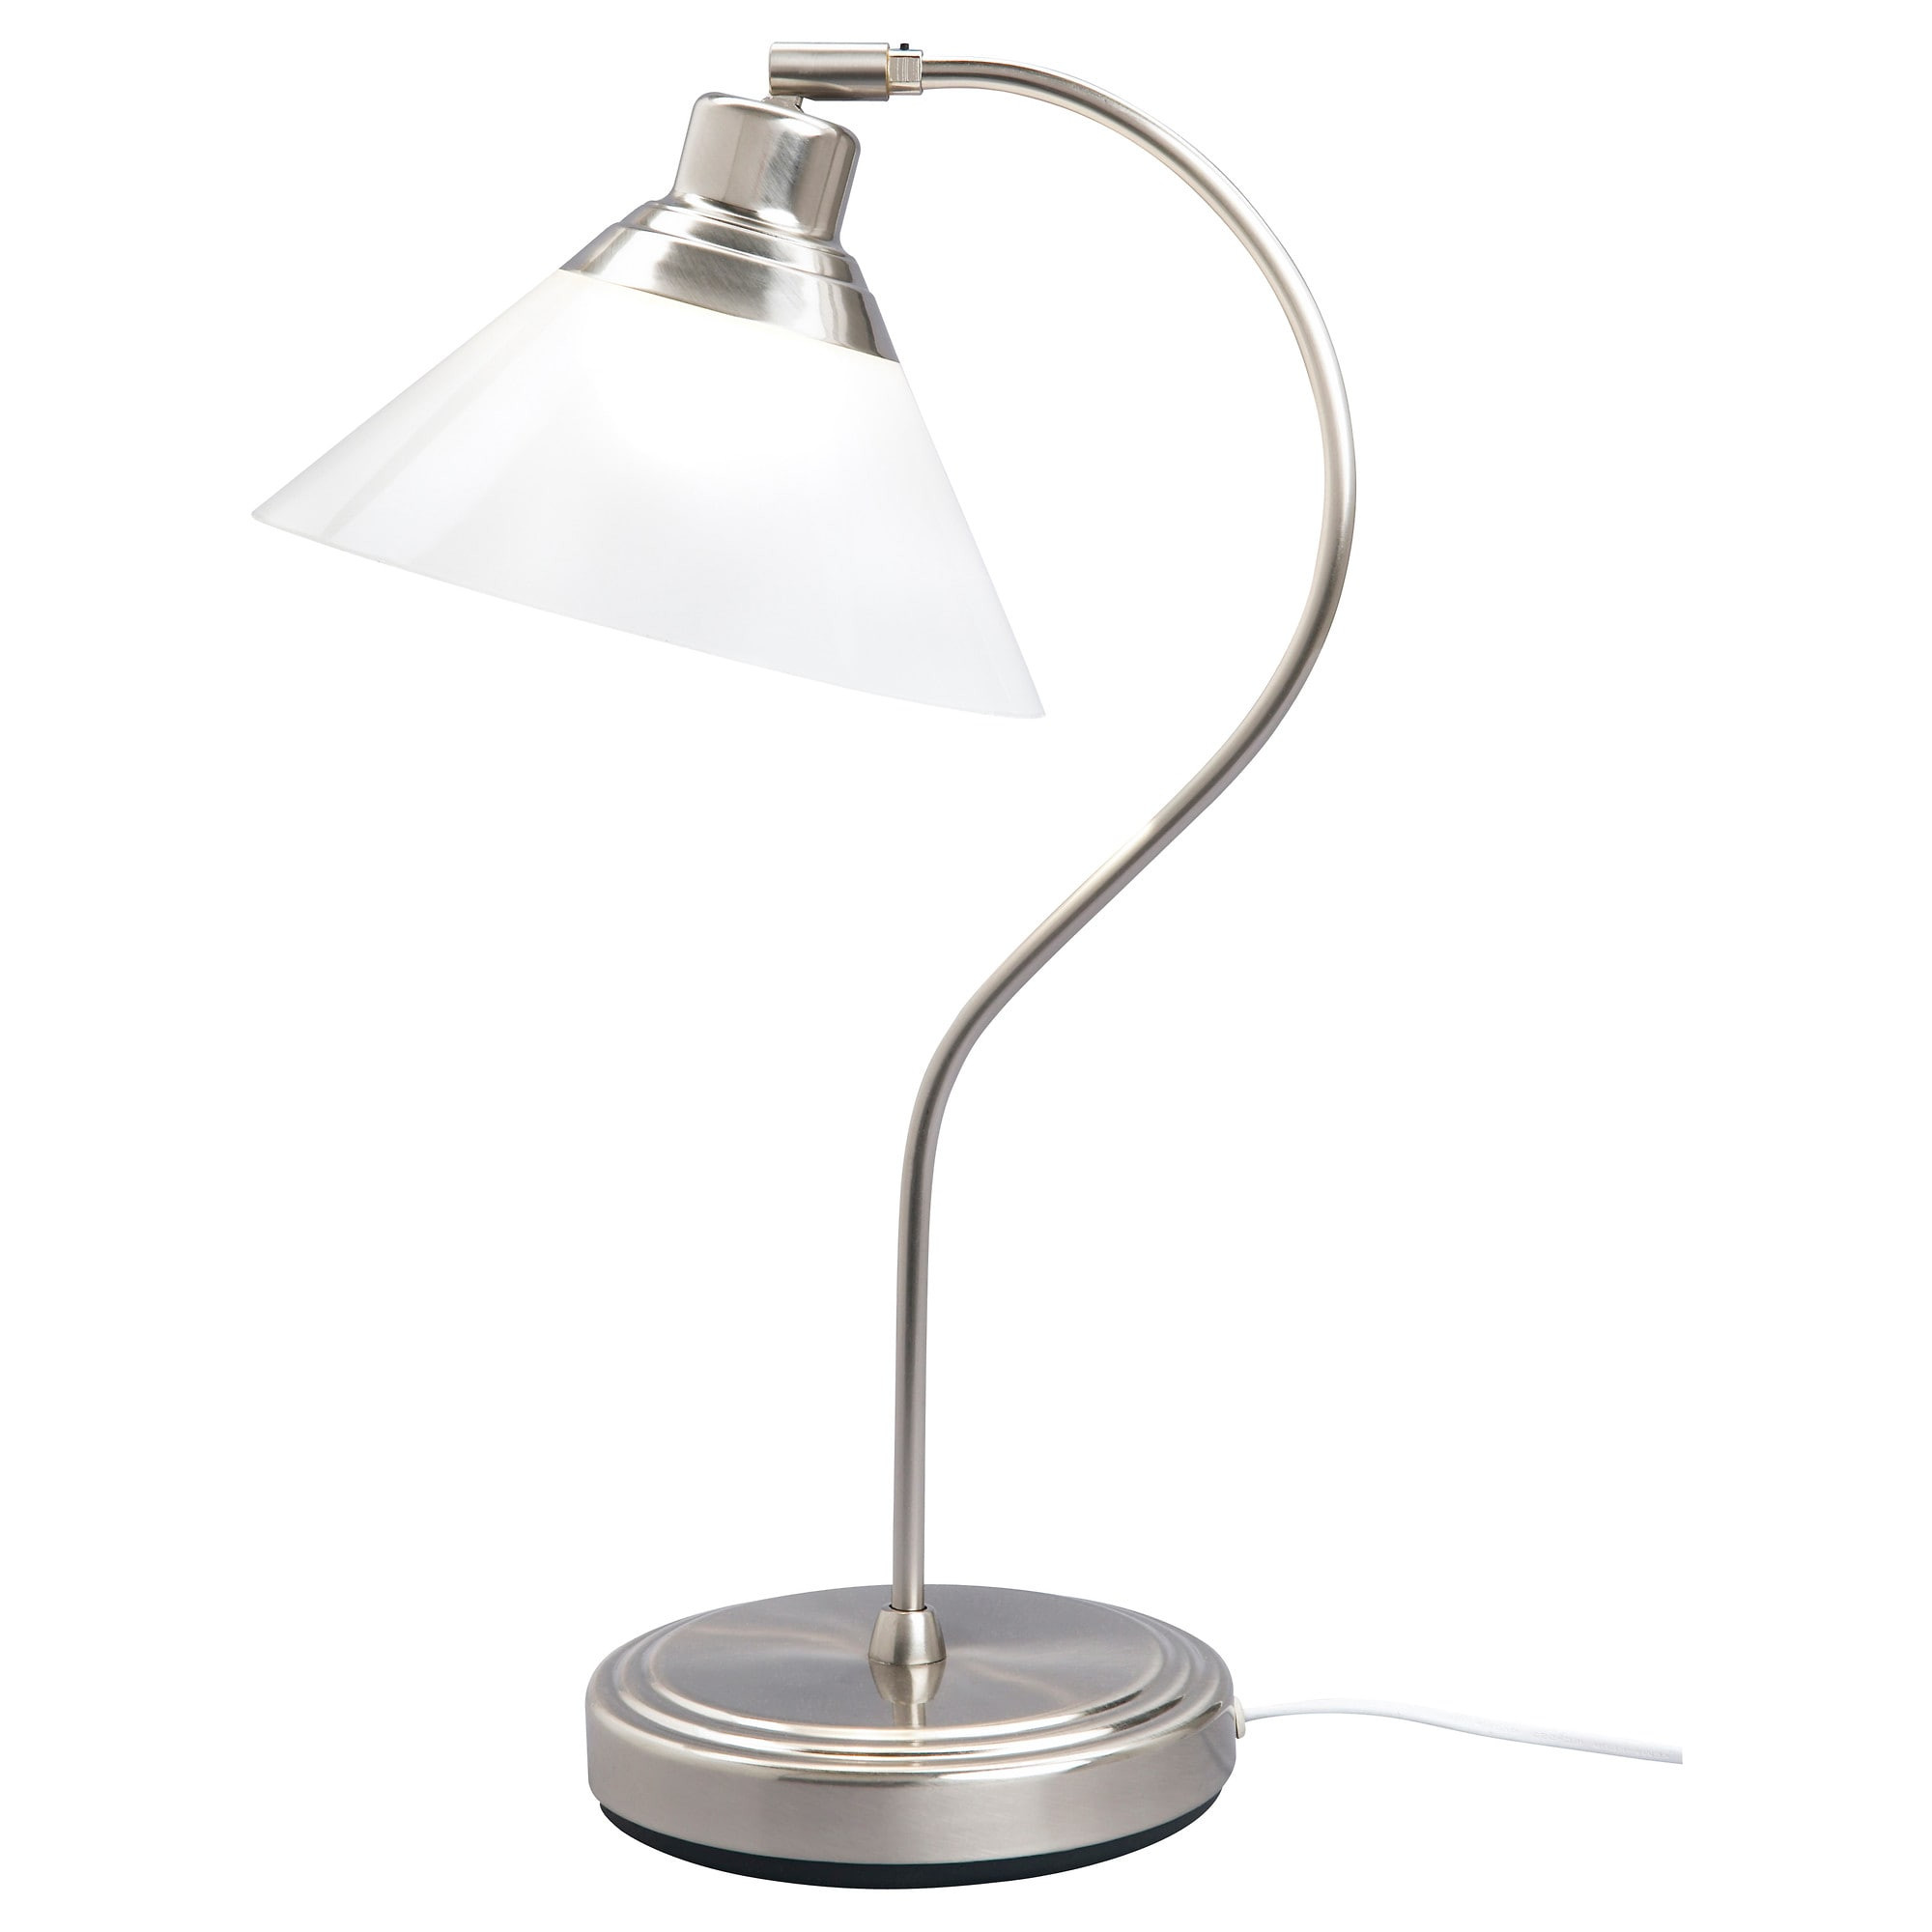 Best ideas about Desk Lamps Ikea . Save or Pin IKEA Now.